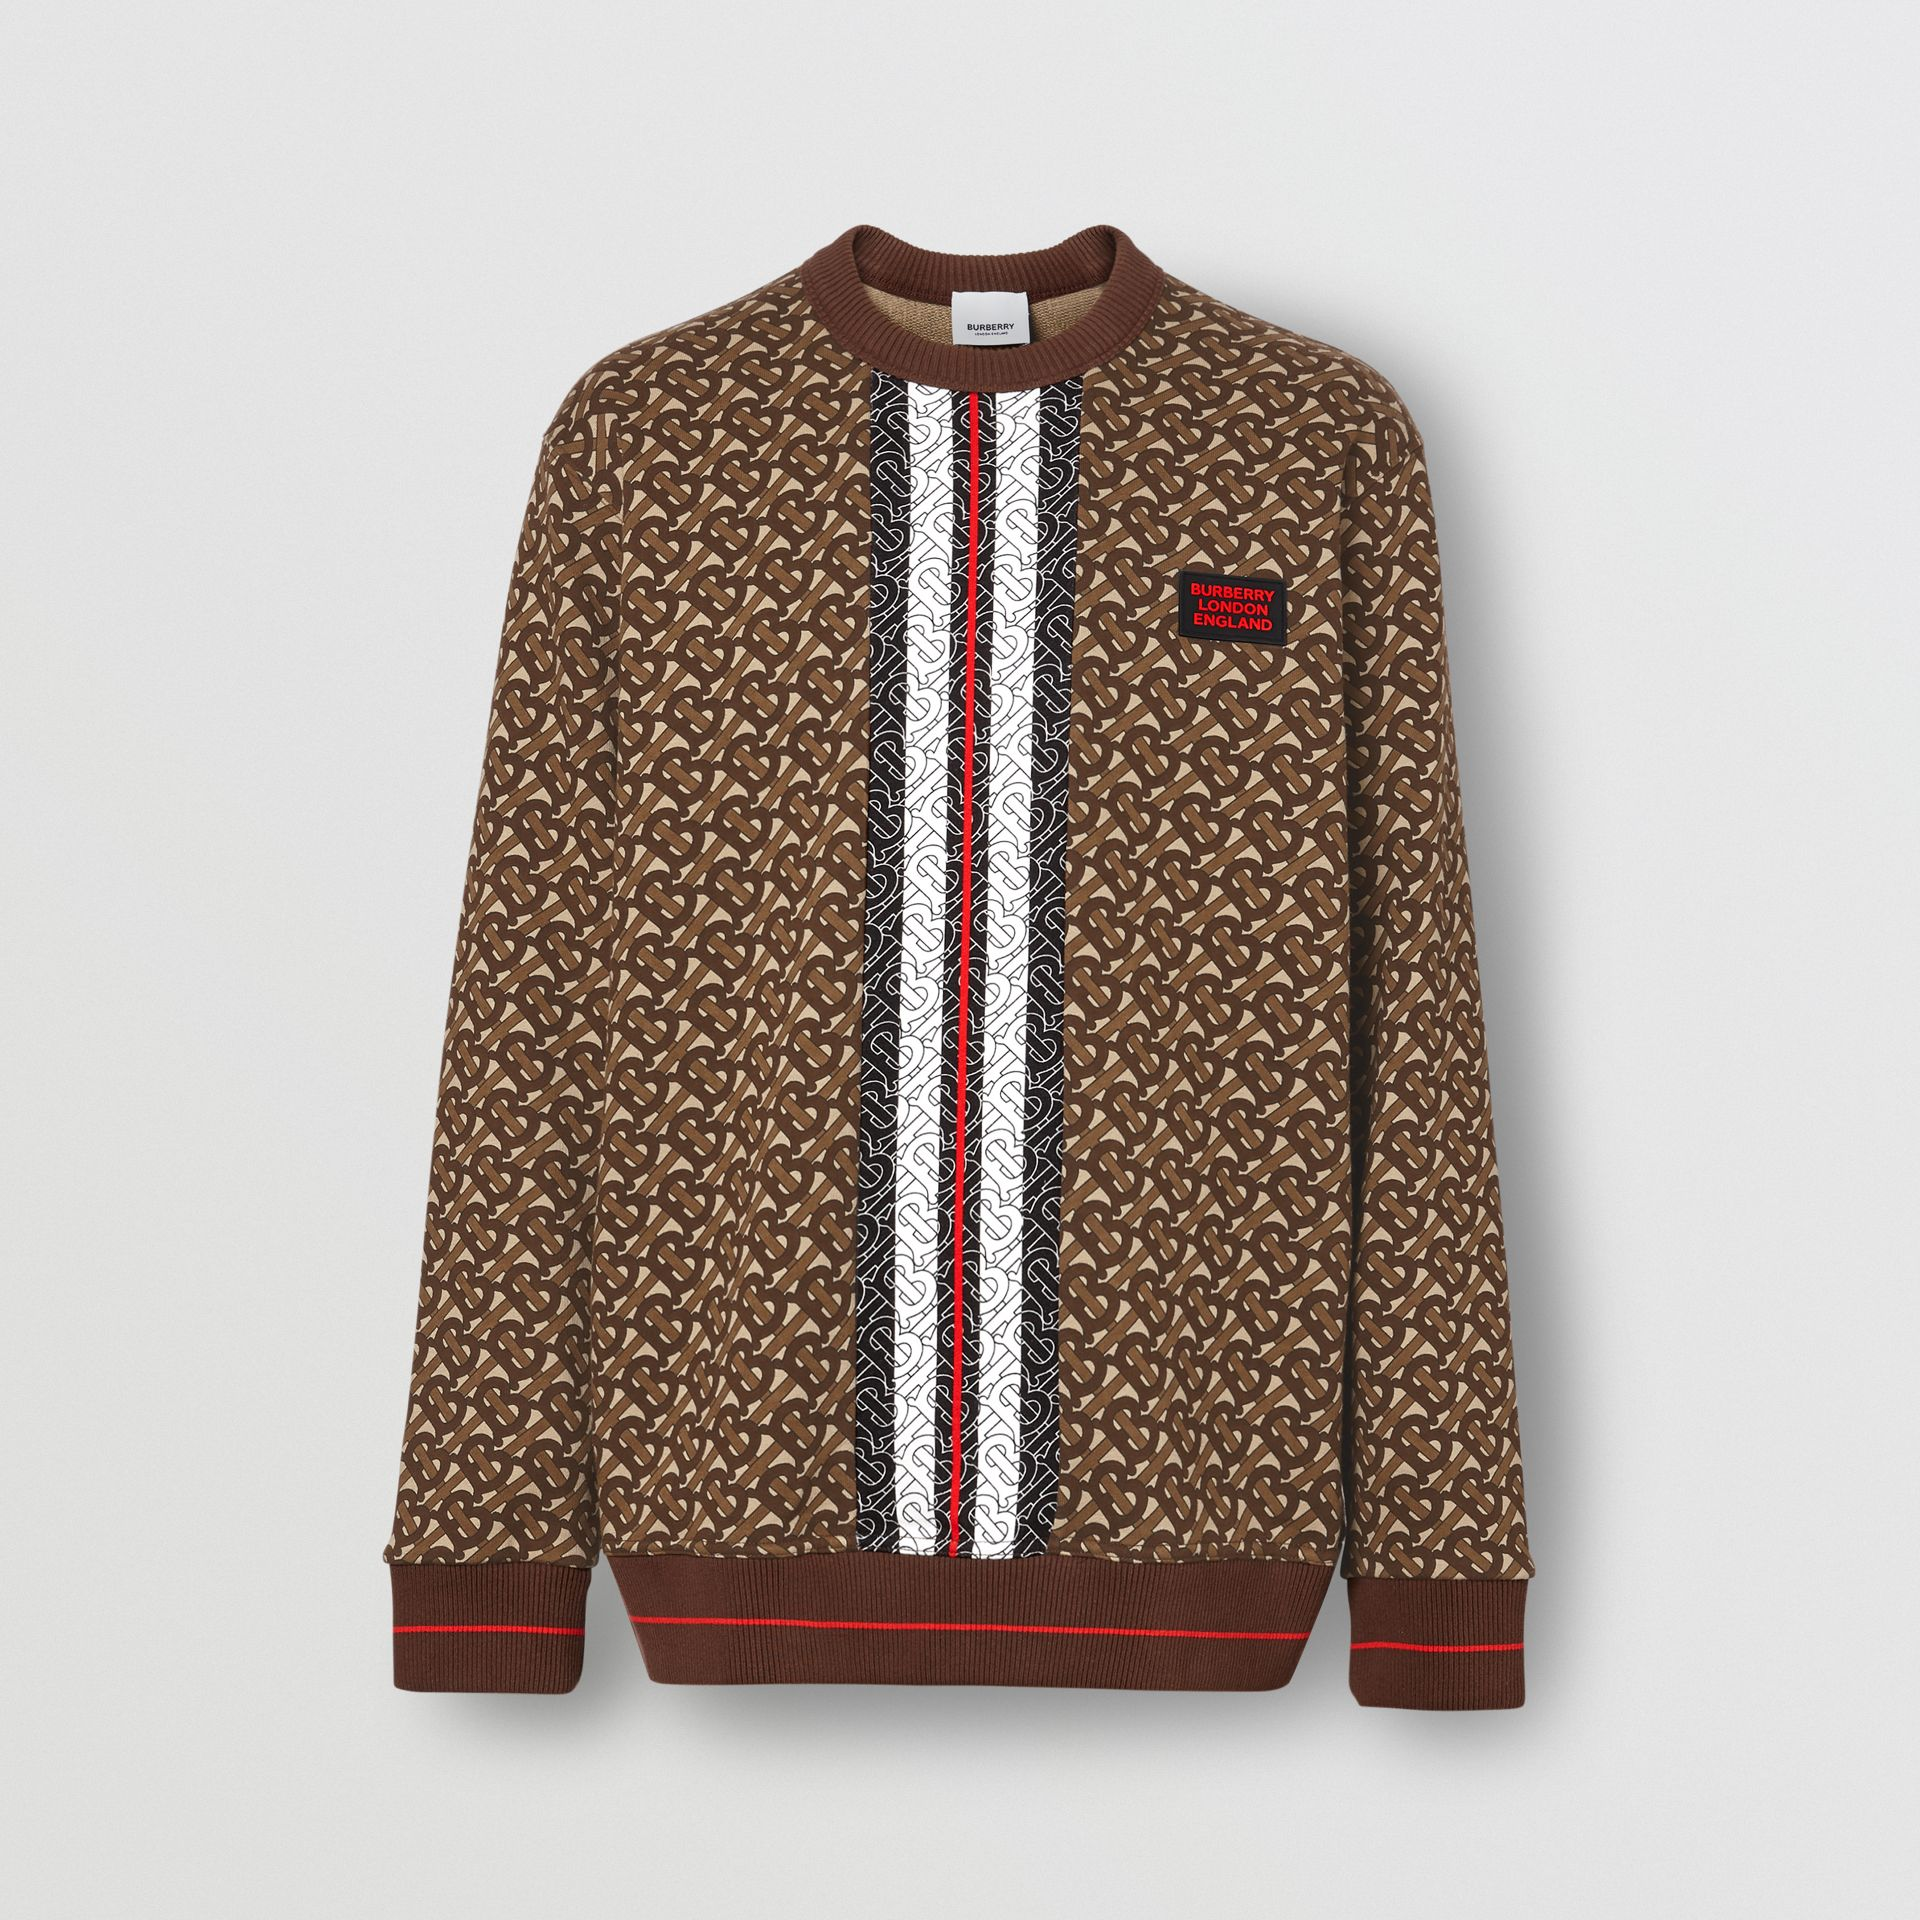 Monogram Stripe Print Cotton Sweatshirt in Bridle Brown - Men | Burberry - gallery image 3